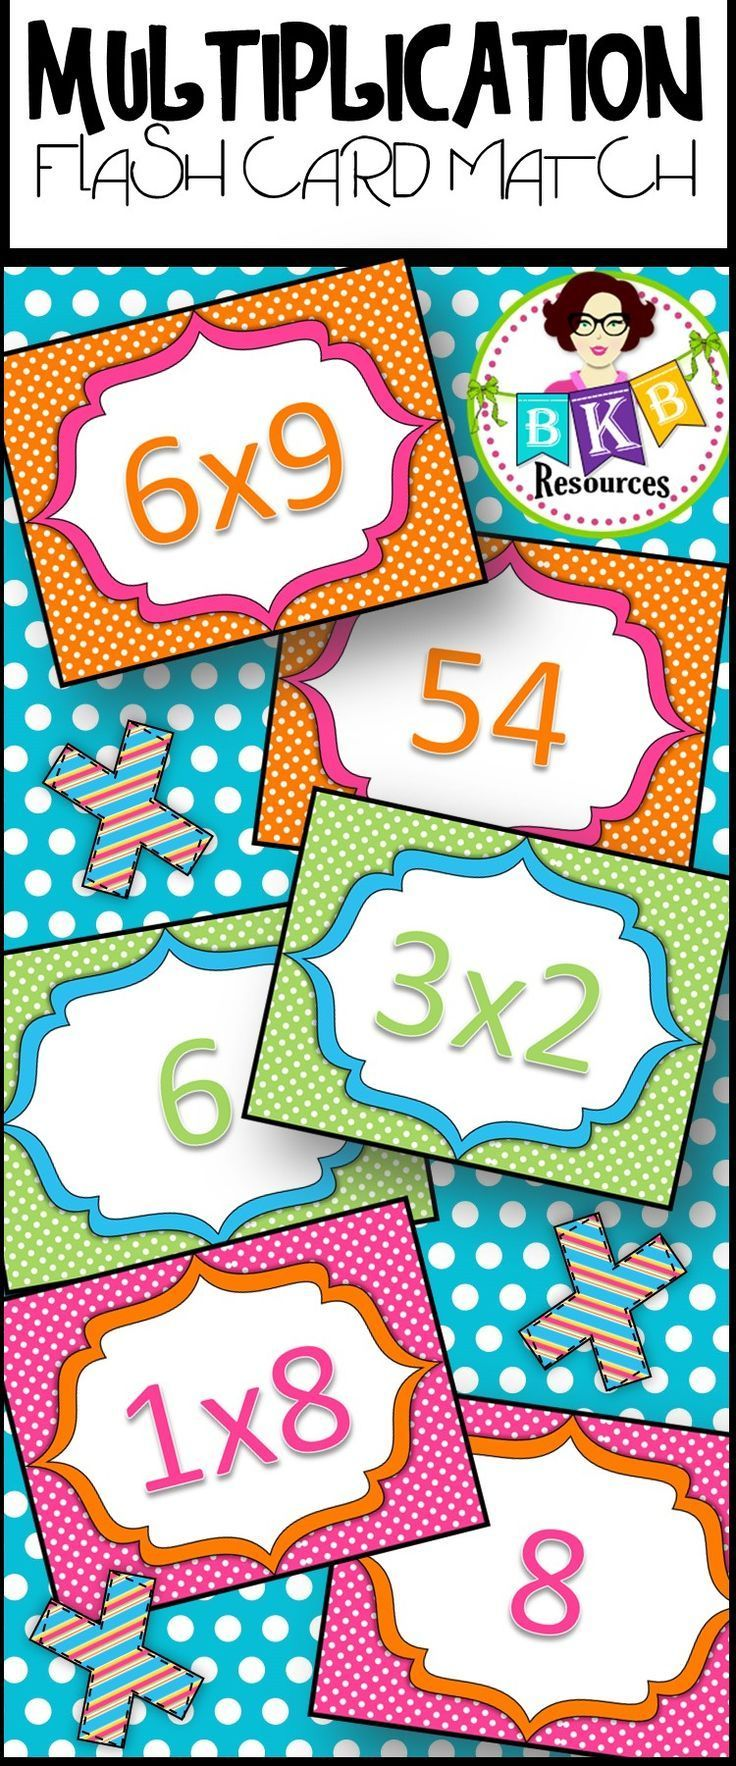 multiplication flash card match | multiplication flash cards